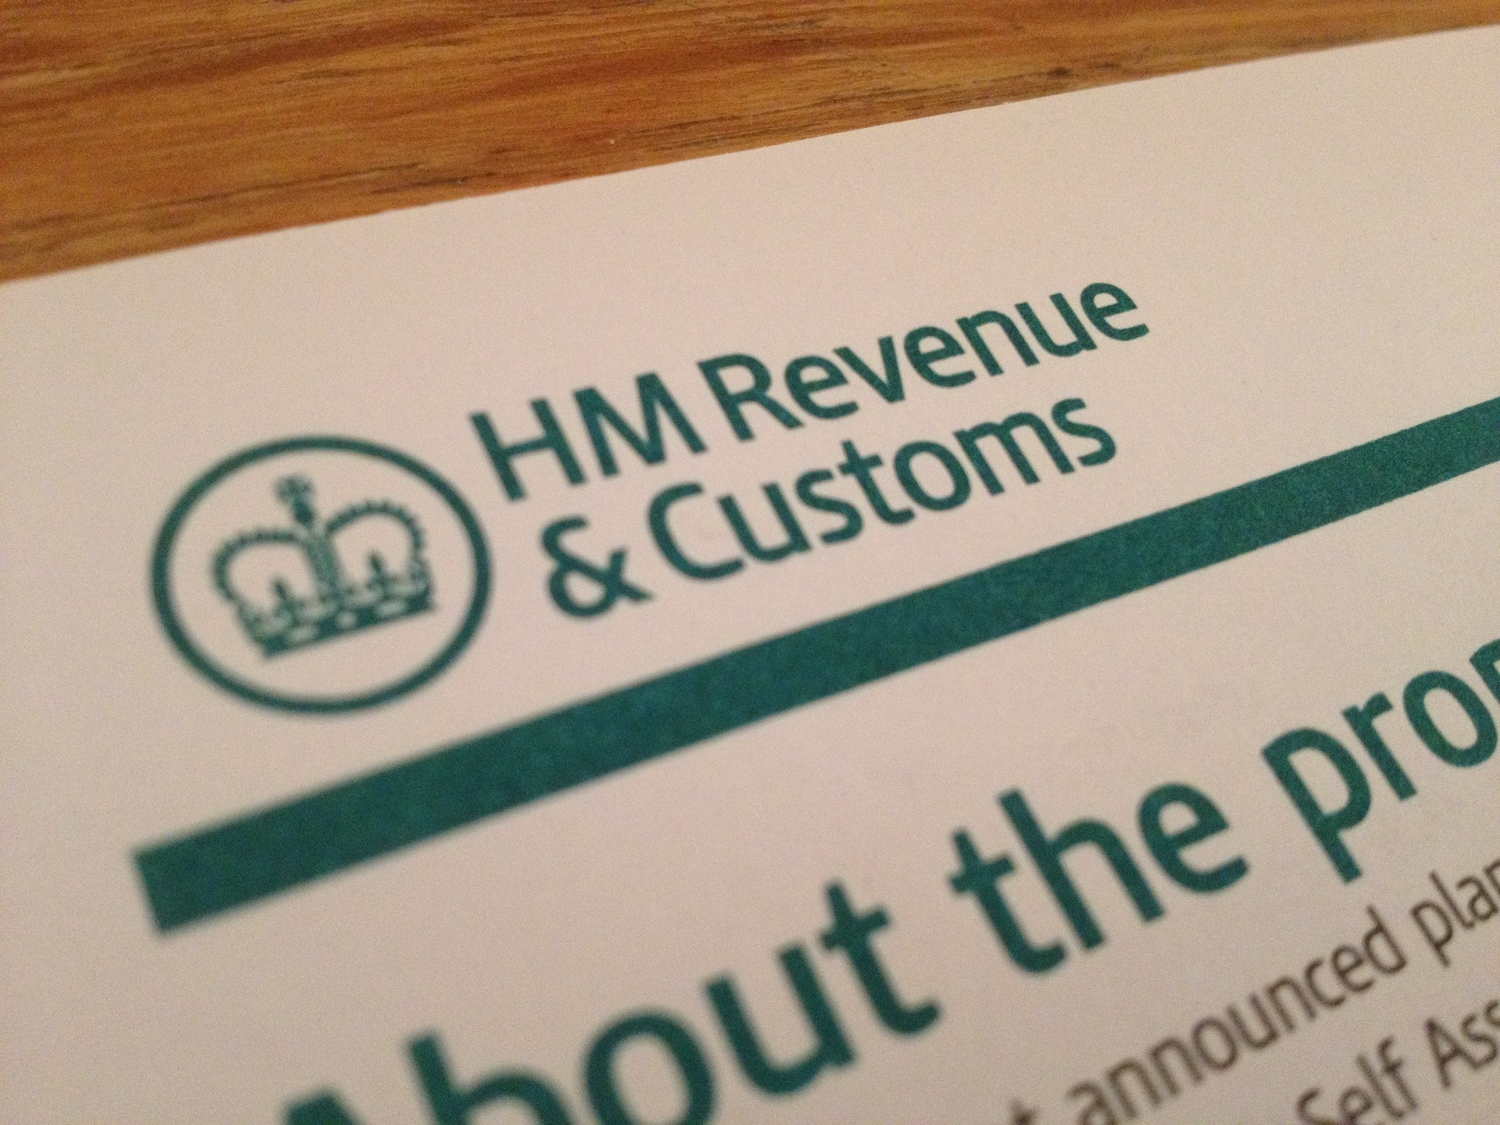 Letter heading of HMRC (photograph by Paul Forrester)